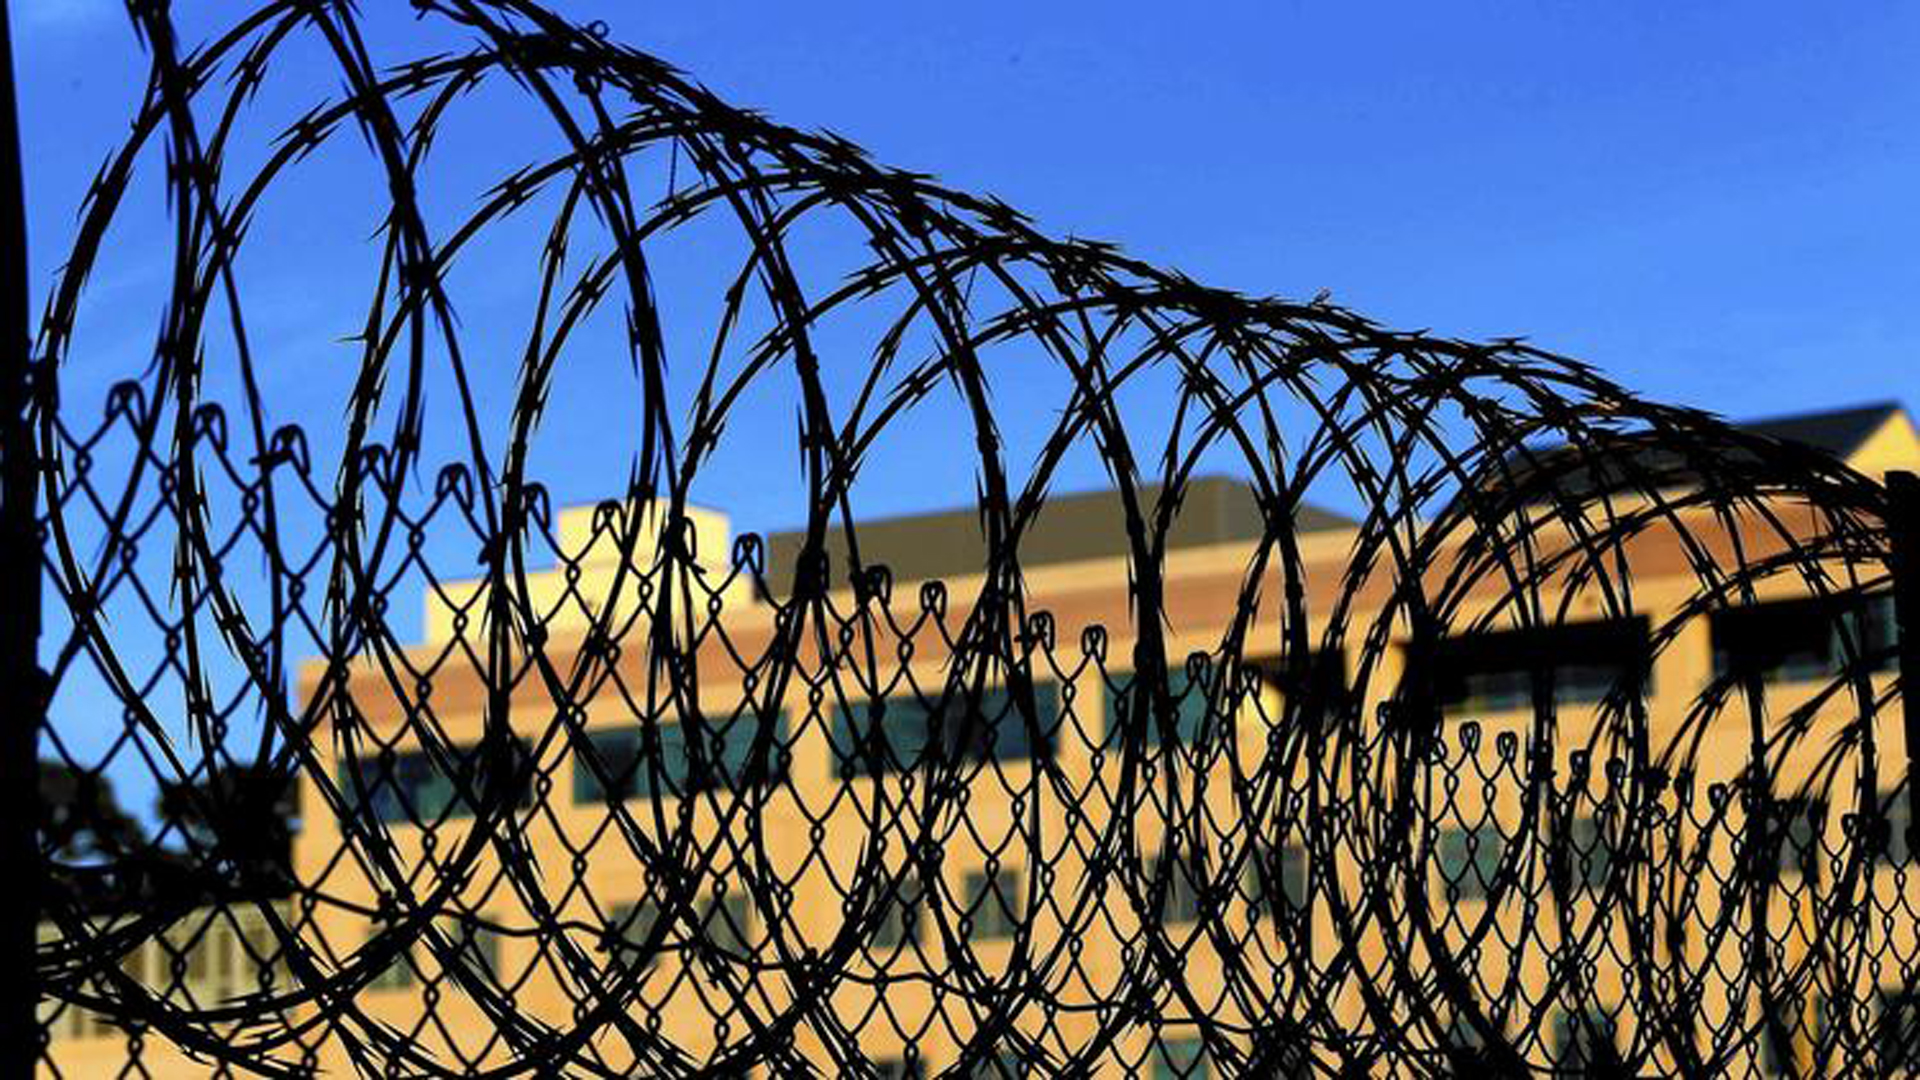 Razor wire encircles the exercise yard at San Quentin. Federal courts have ruled that it is unconstitutional to execute people who are not aware of what is happening to them. Some analysts see irony in providing for the long-term mental health of those sentenced to die. (Los Angeles Times)